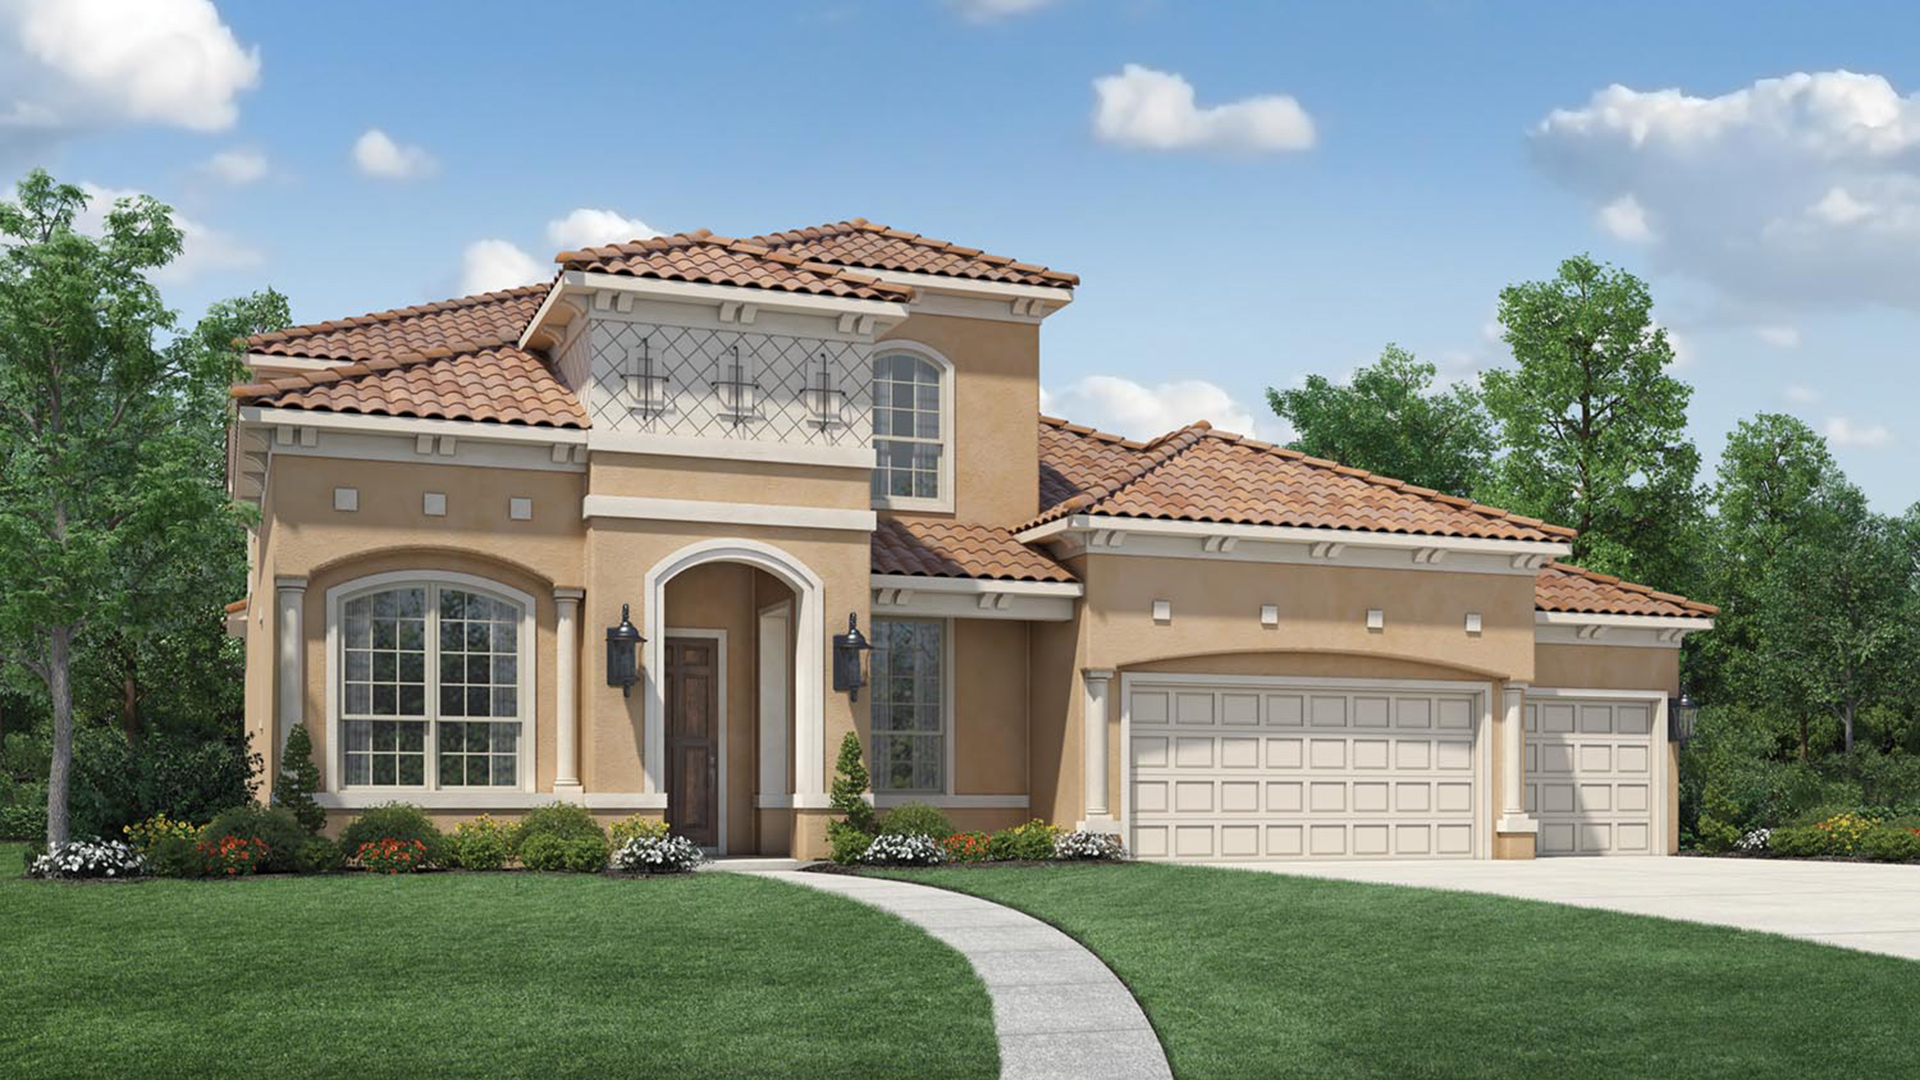 Sienna plantation village of sawmill lake the for Home designs newcastle